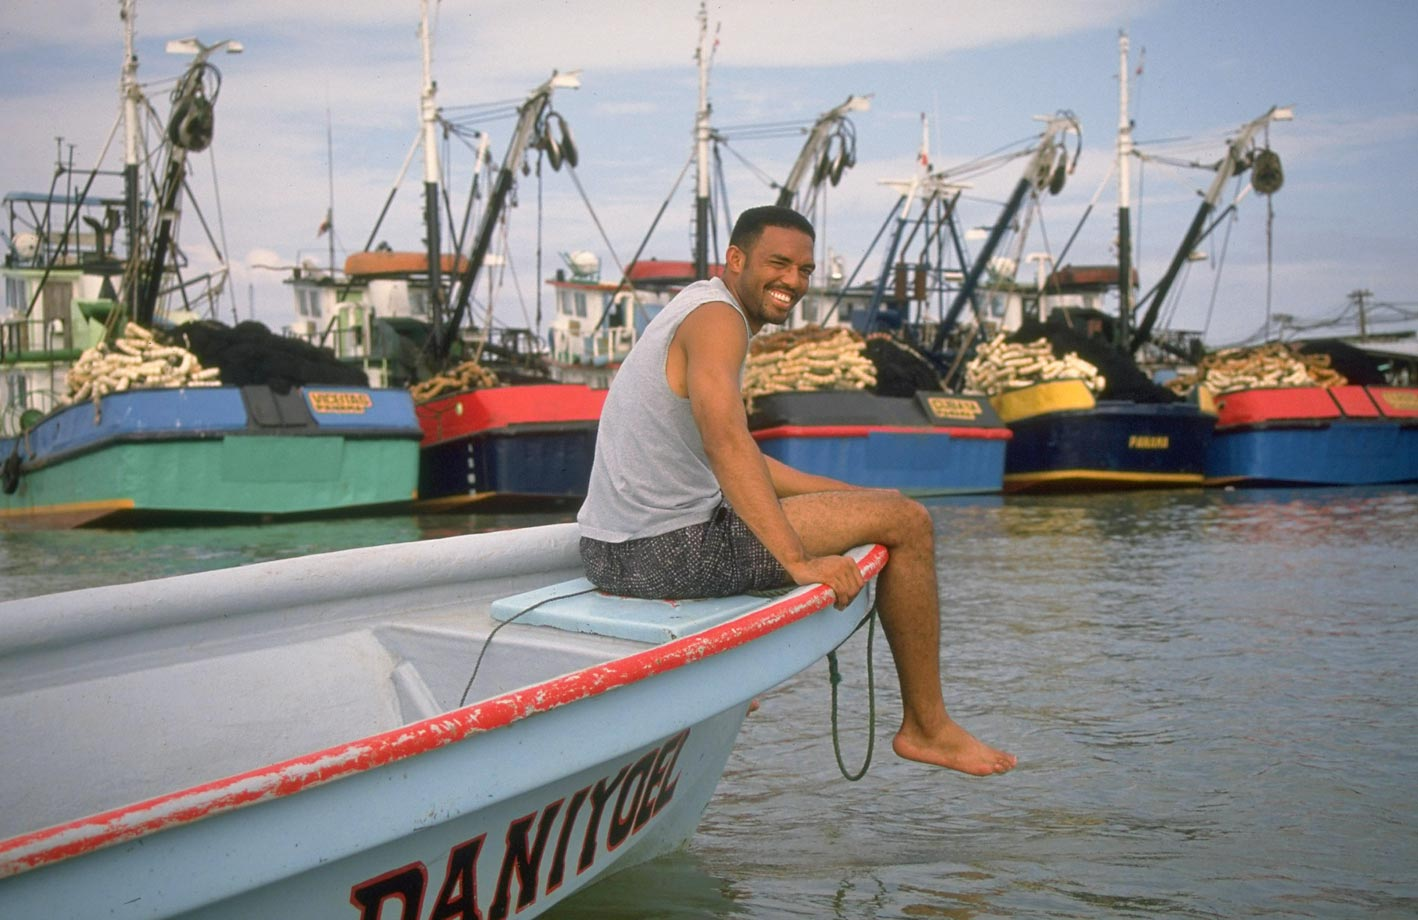 Rivera sits alone on the boat Daniyoel in Panama in February 1997. Rivera was preparing for his first season as Yankees closer.